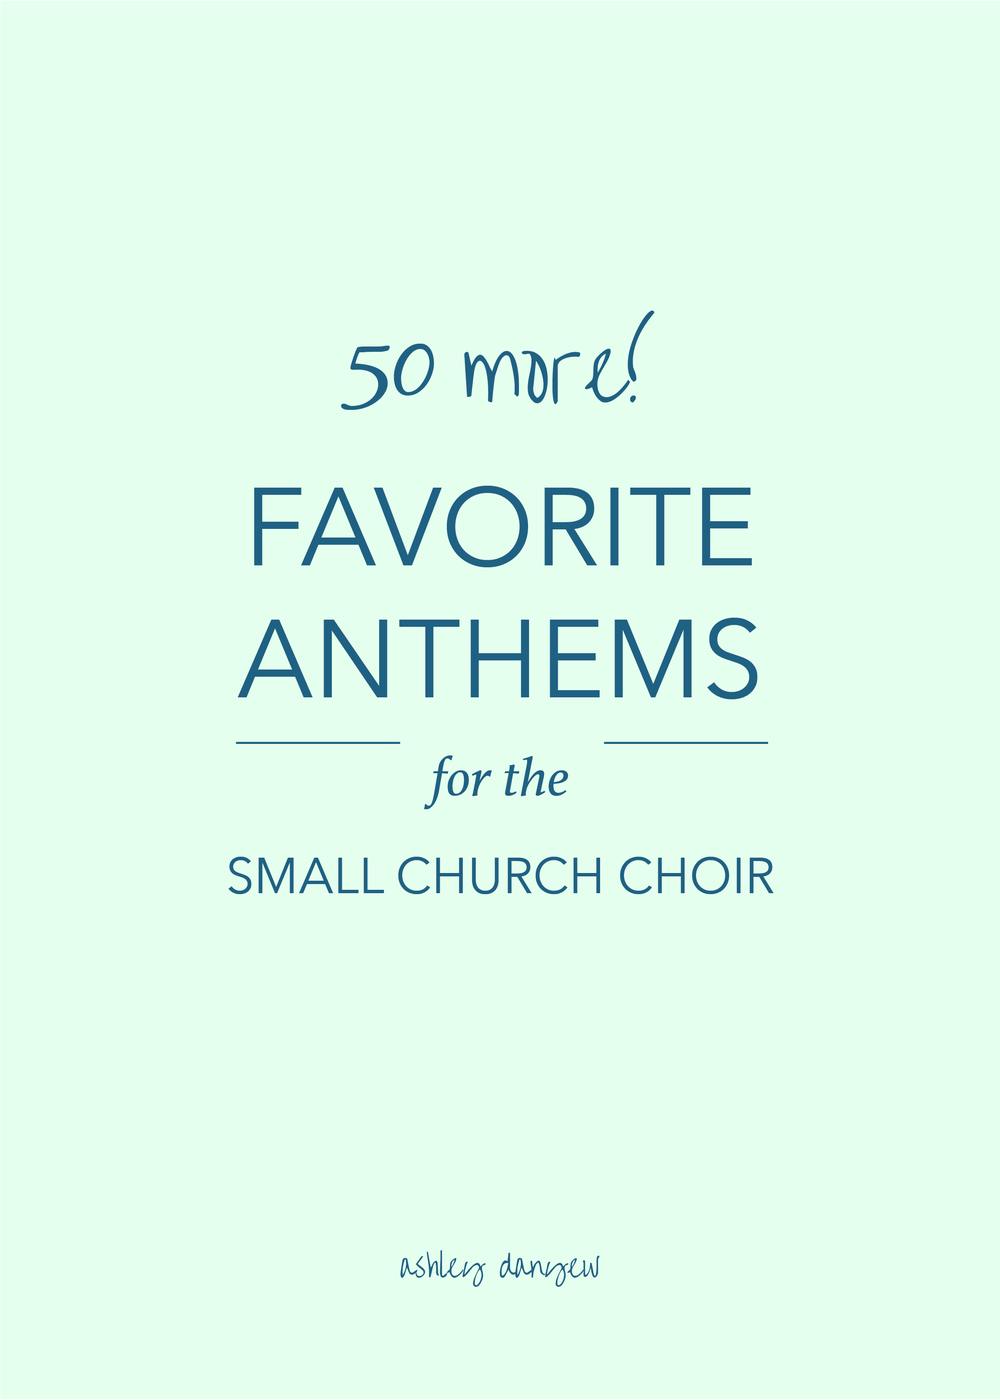 50-More-Favorite-Anthems-for-the-Small-Church-Choir-01.png